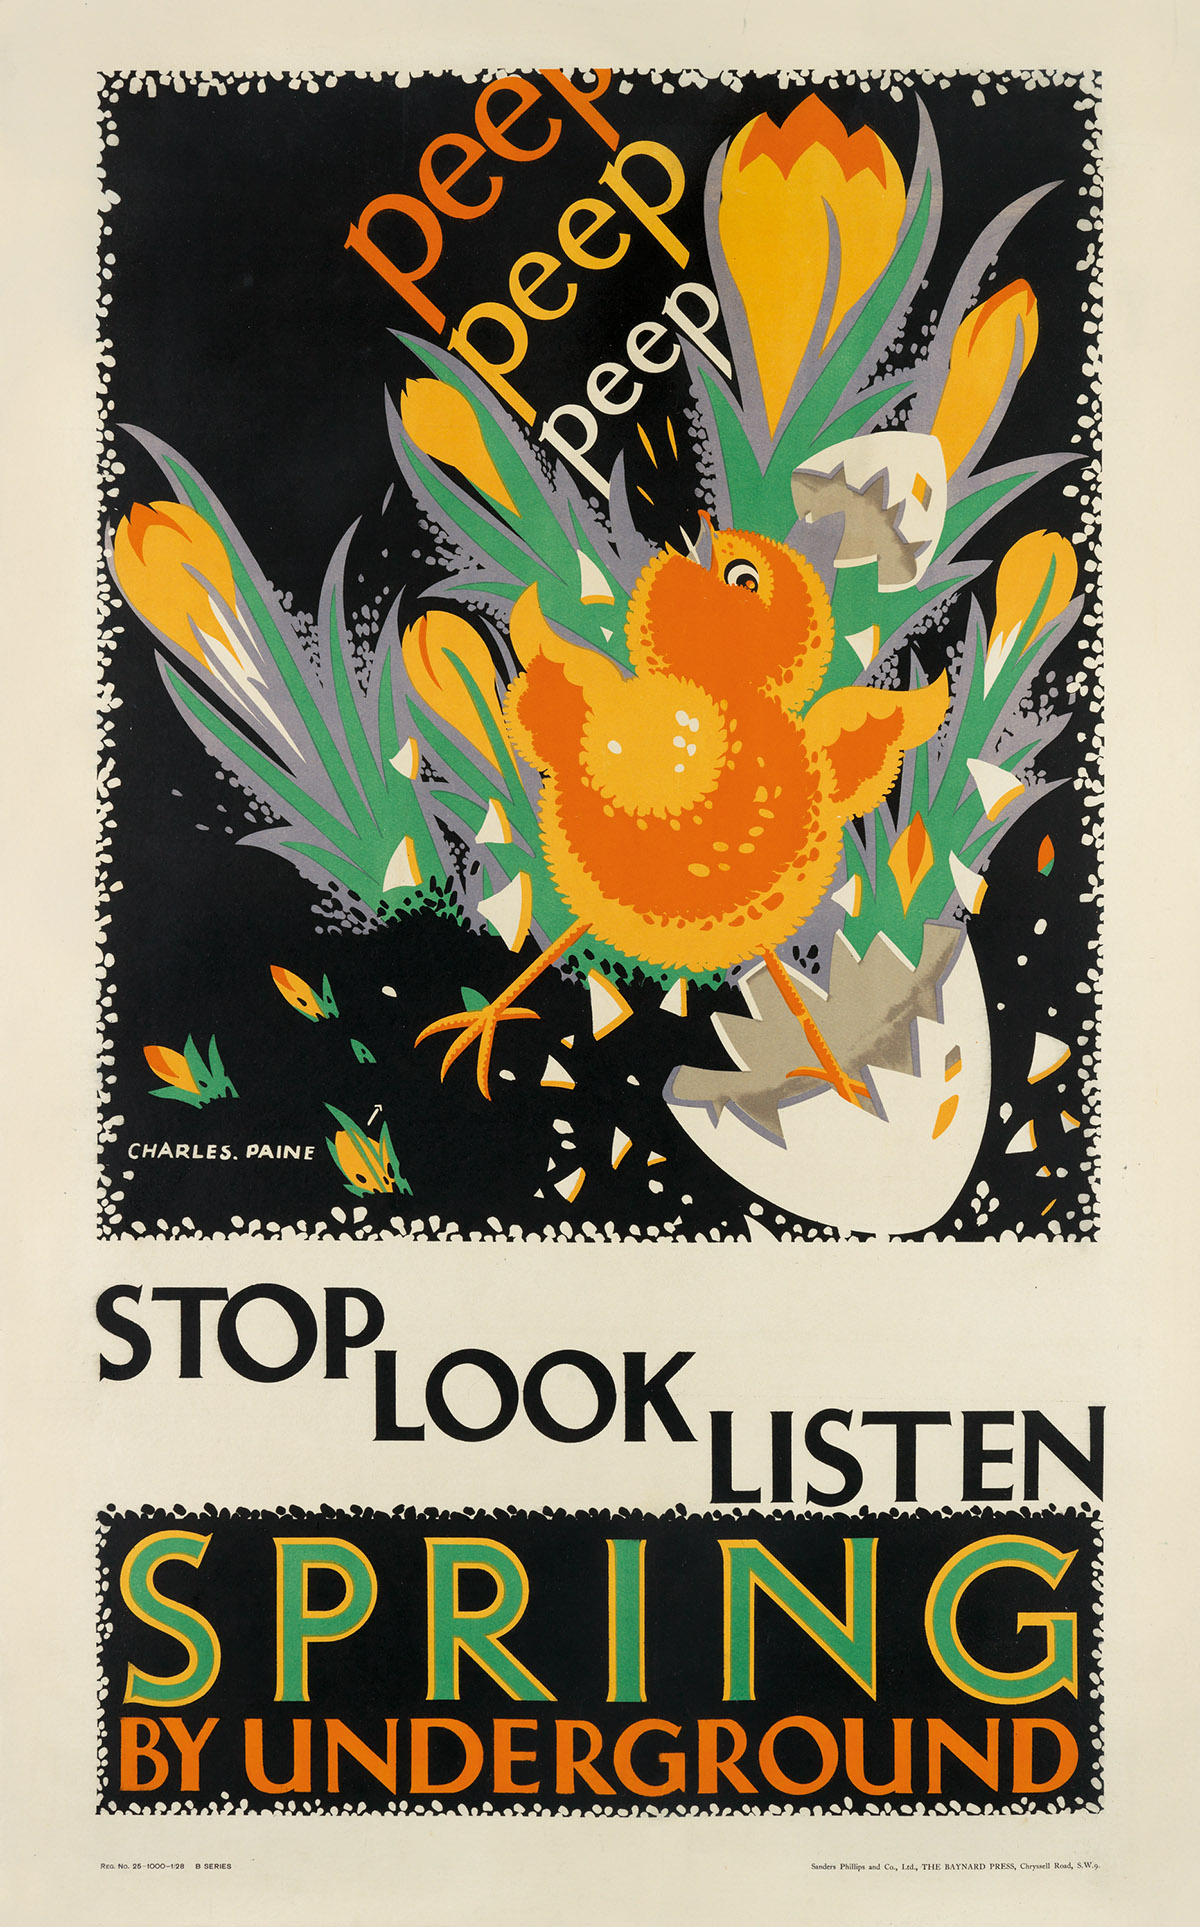 CHARLES PAINE (1895-1967). STOP LOOK LISTEN / SPRING BY UNDERGROUND. 1928. 39x24 inches, 101x63 cm. Sanders Phillips & Co., Ltd., Londo